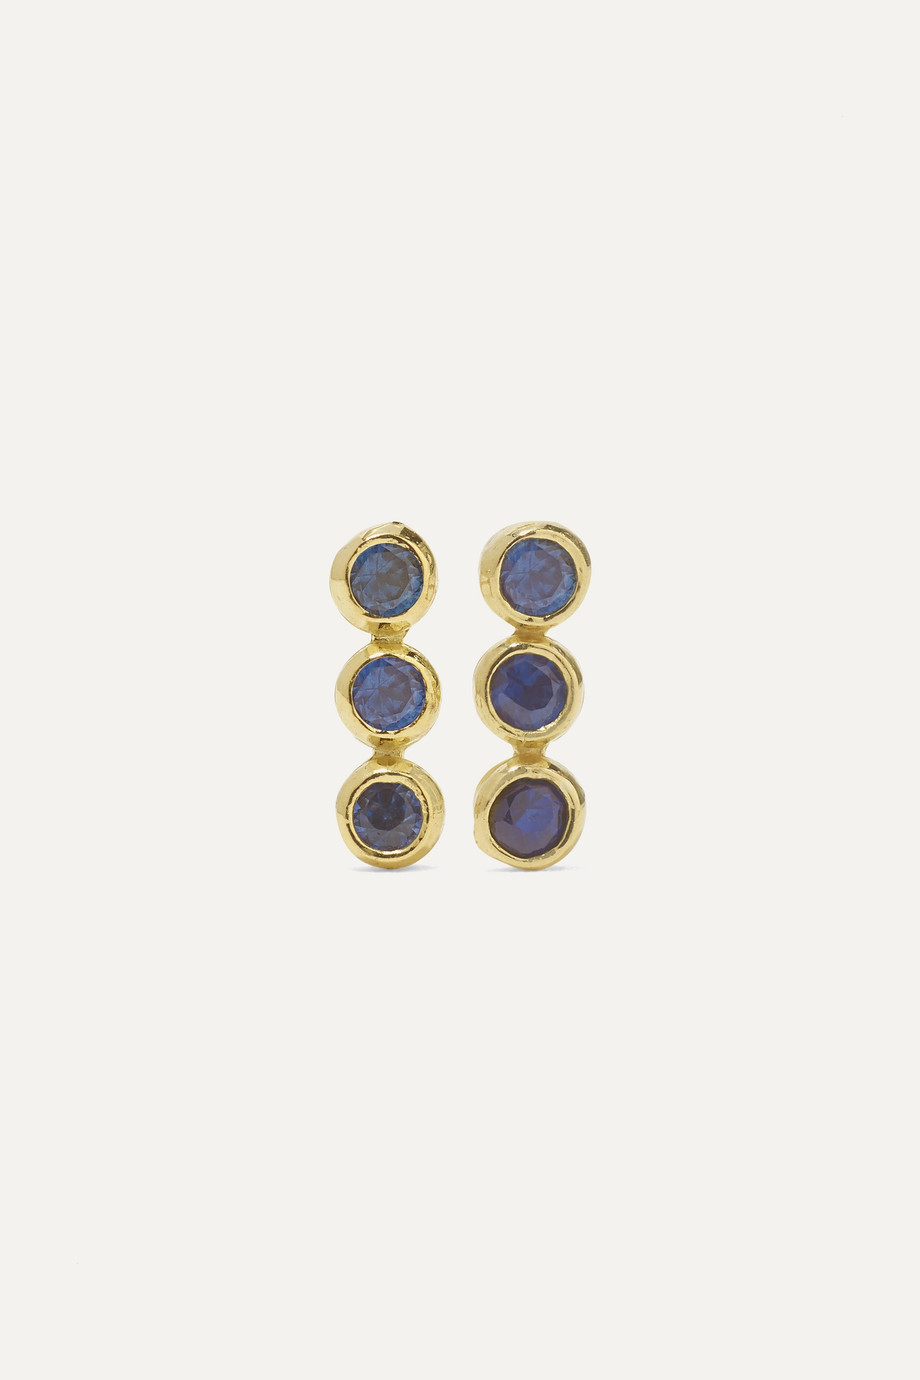 JENNIFER MEYER 18-karat gold sapphire earrings